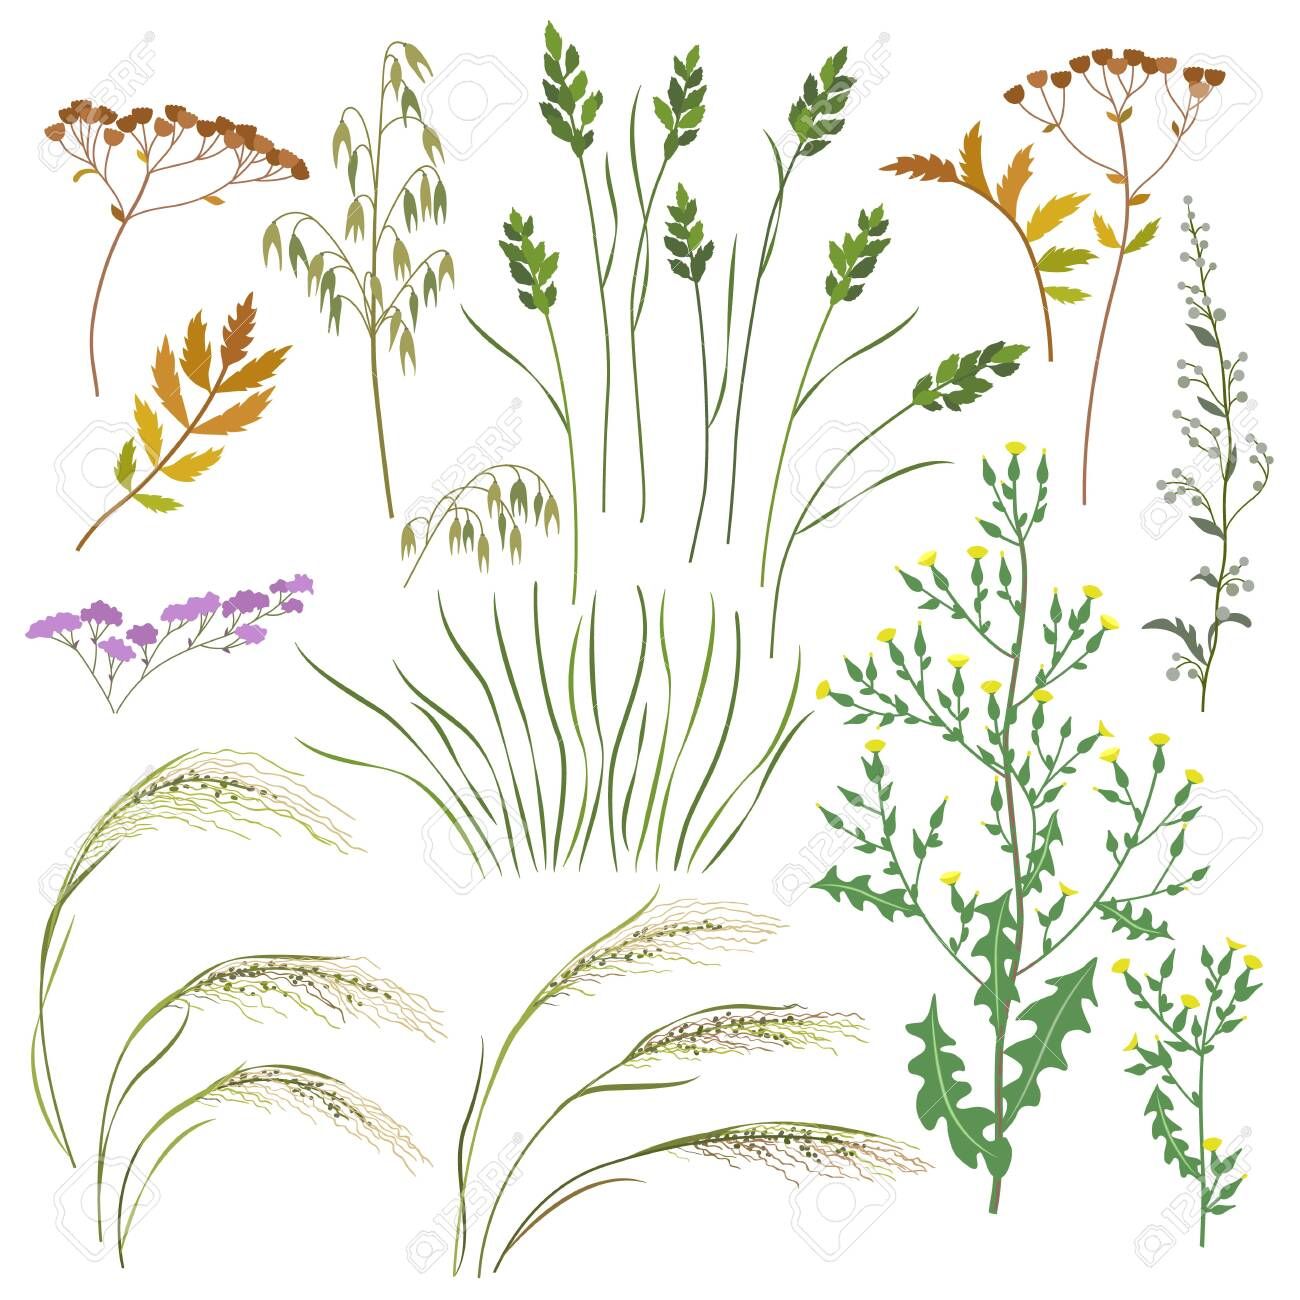 Set of wild grasses, herbs and cereals isolated on white background